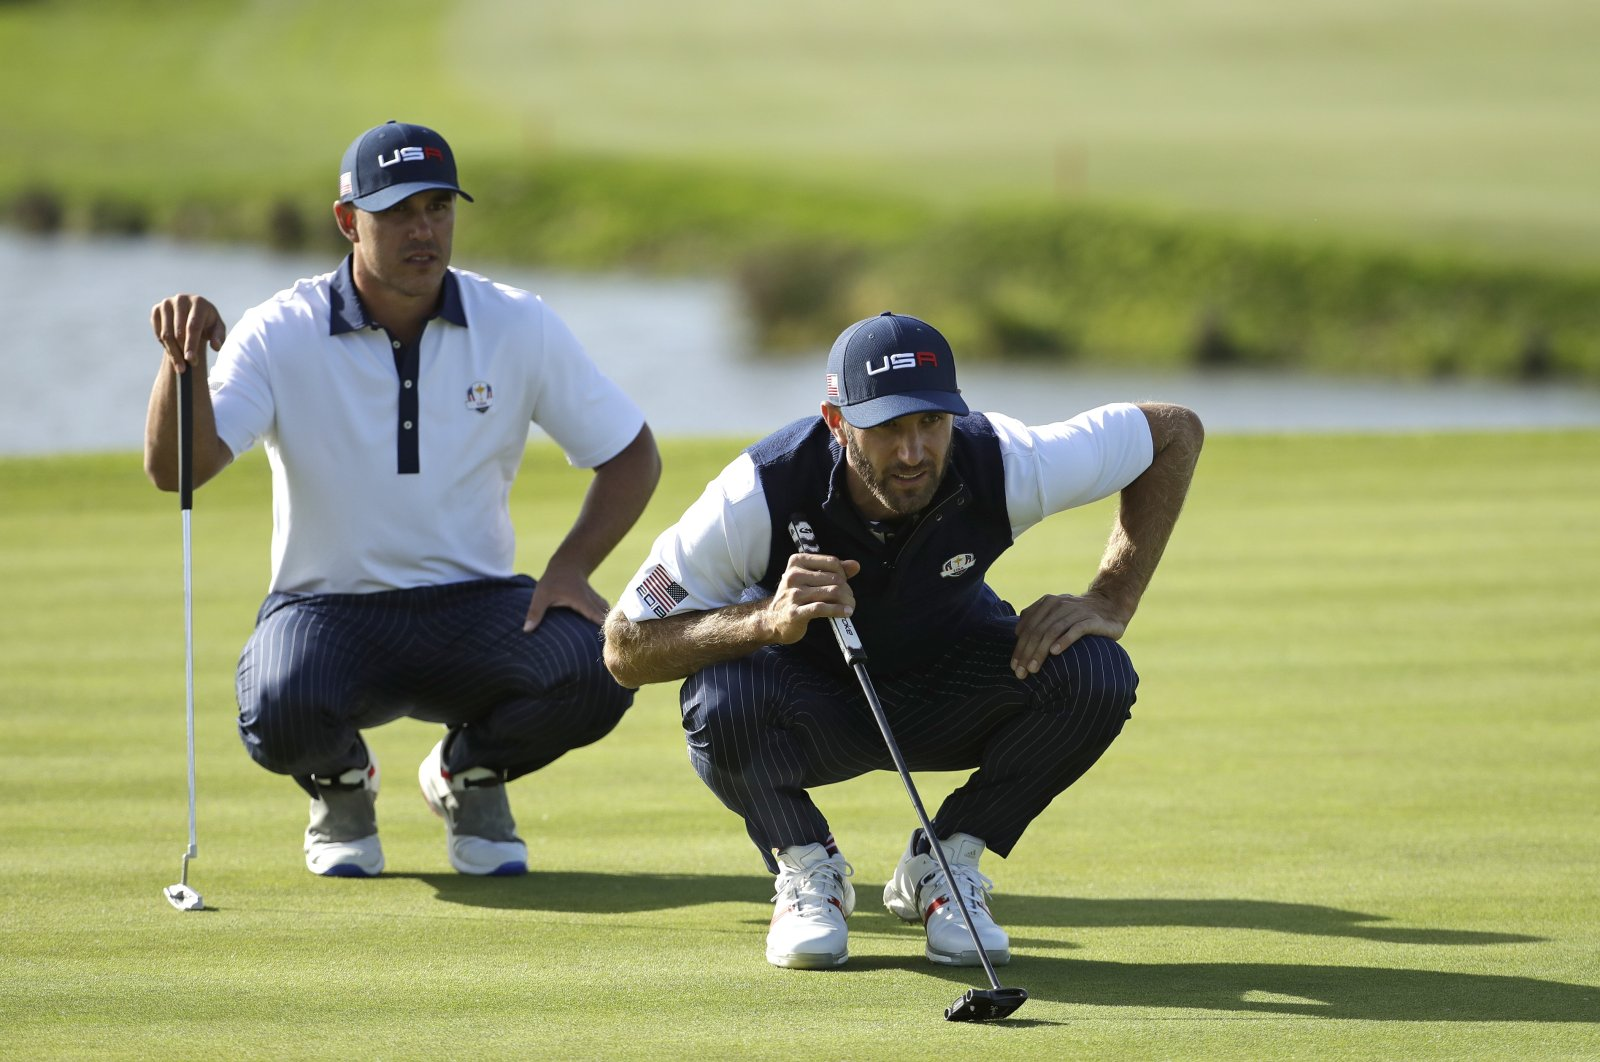 Dustin Johnson (R) and Brooks Koepka line up a putt during a foursome match on the second day of the 42nd Ryder Cup at Le Golf National in Saint-Quentin-en-Yvelines, outside Paris, France, Sept. 29, 2018. (AP Photo)